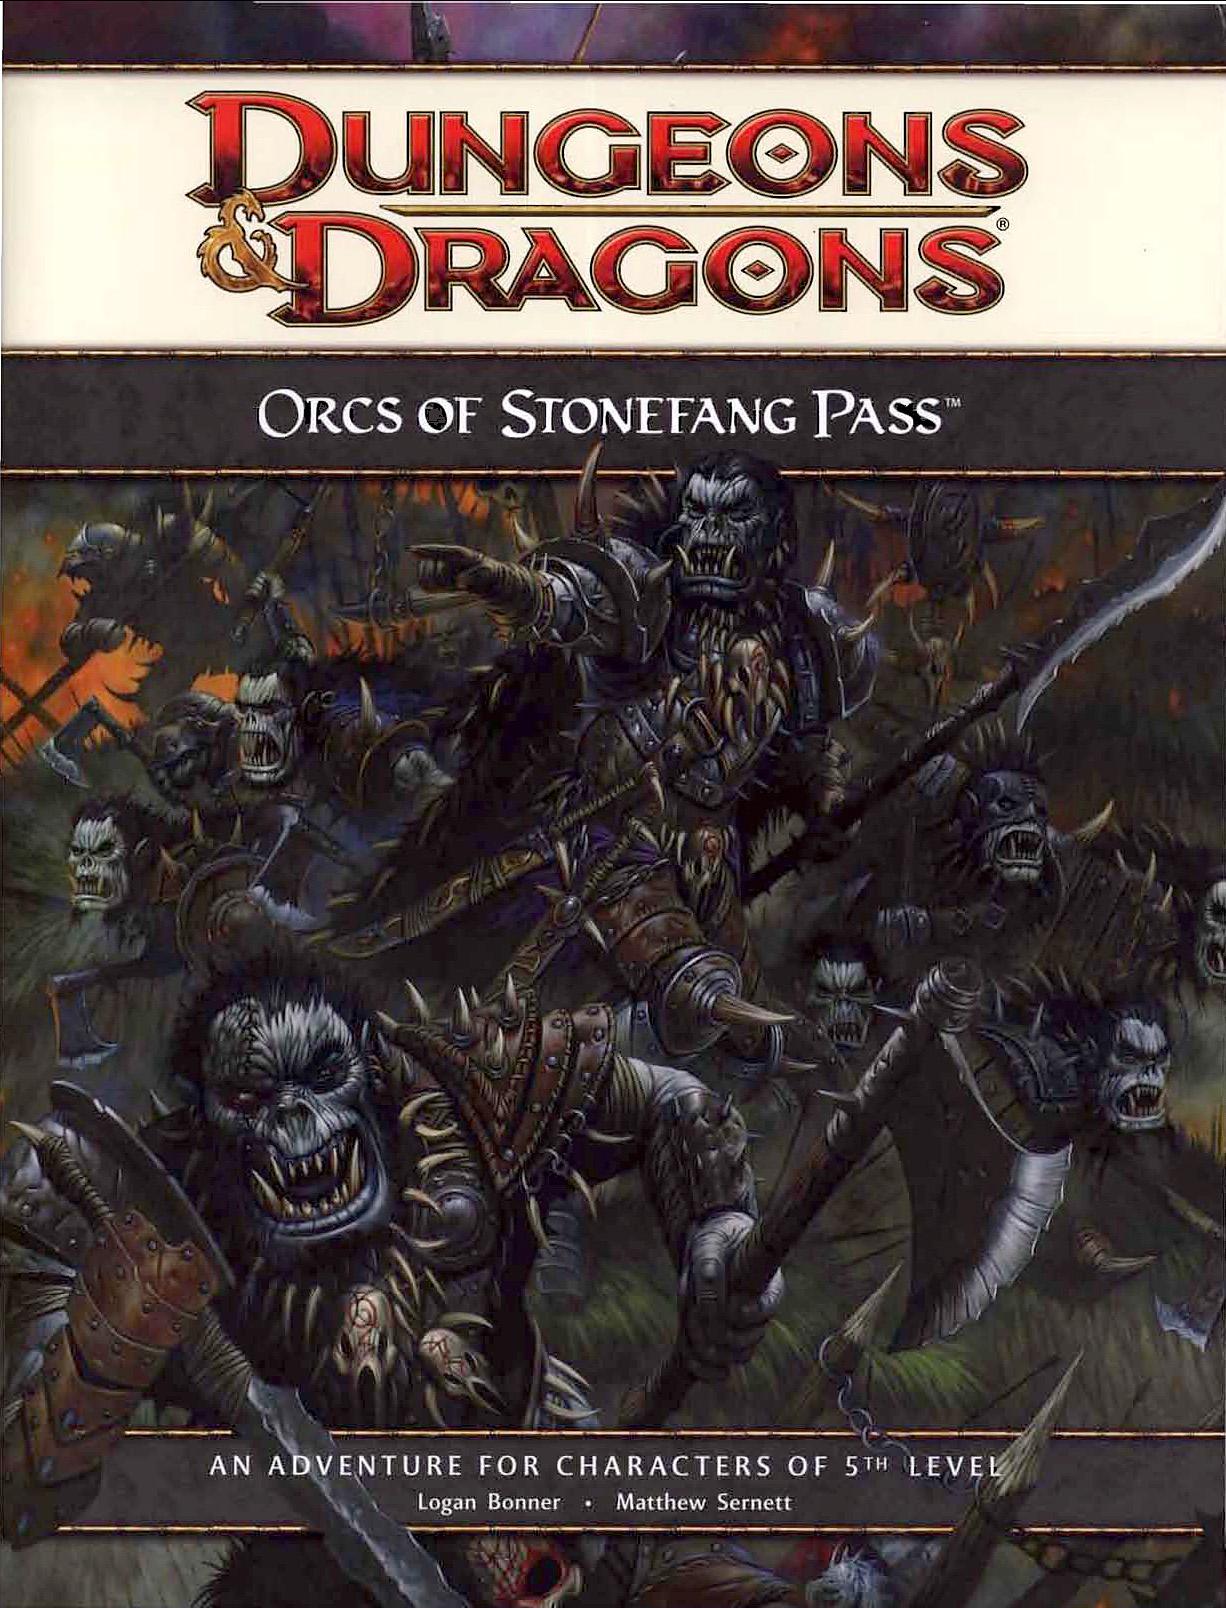 orcs Gli orchi di passo Zannapietra - by Wayne England Orcs of Stonefang Pass (2010-07) © Wizards of the Coast & Hasbro